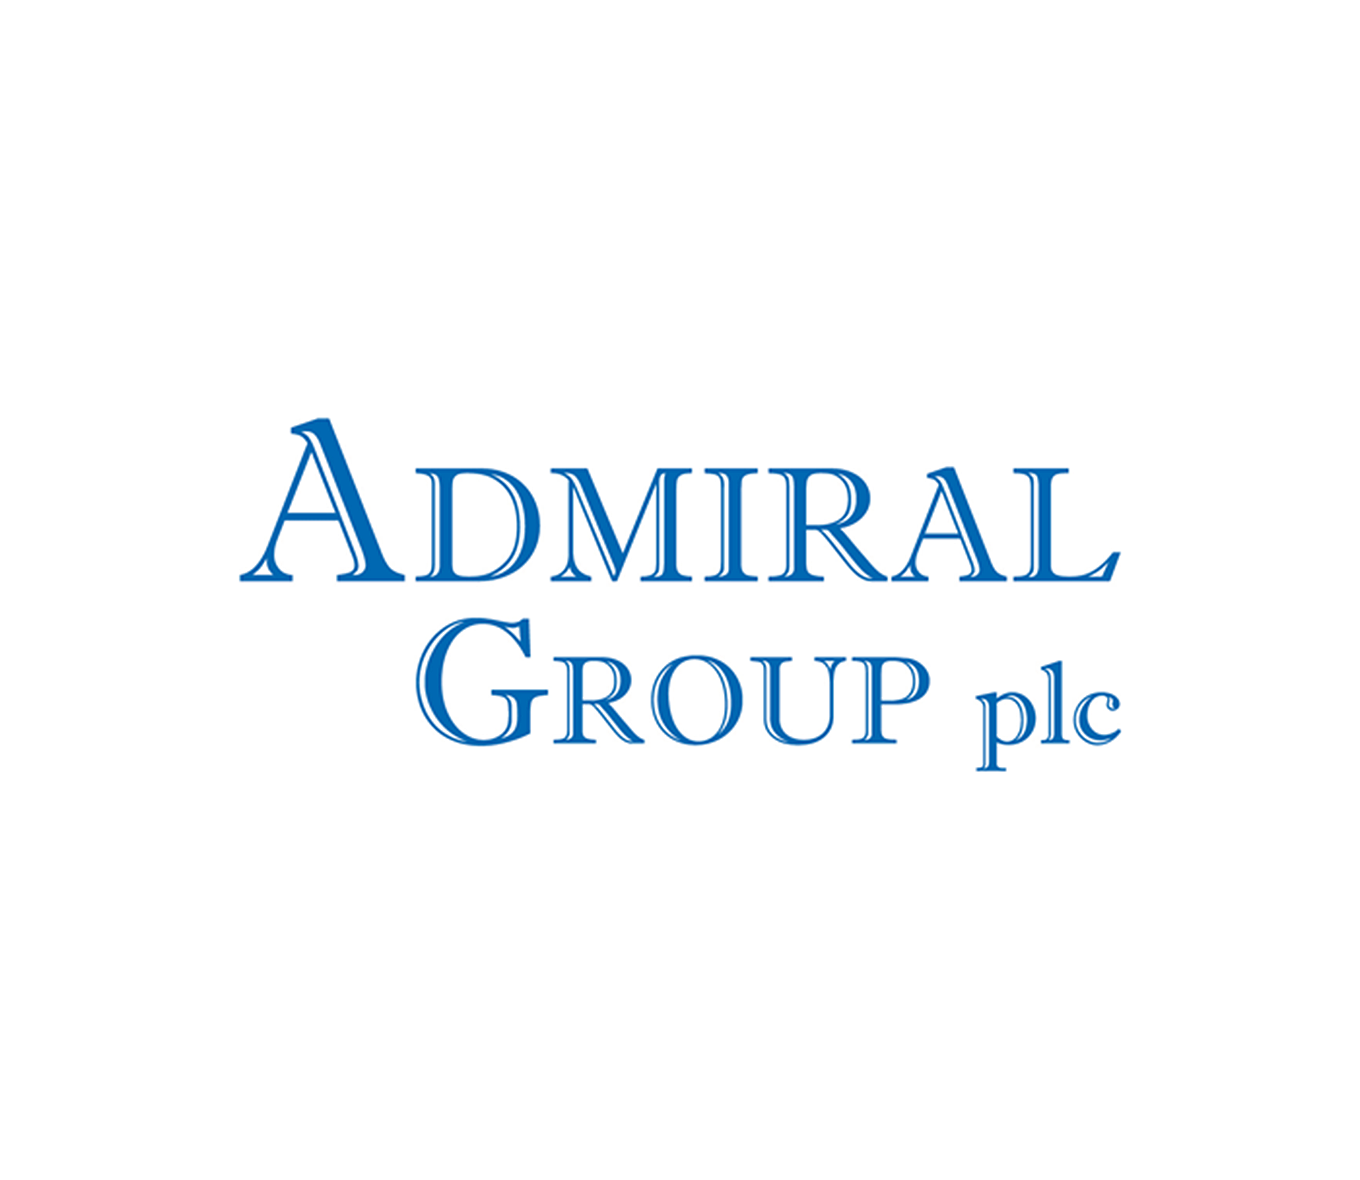 GW-Customer-Logos 3x 0061 Admiral-Group-plc logo-500w